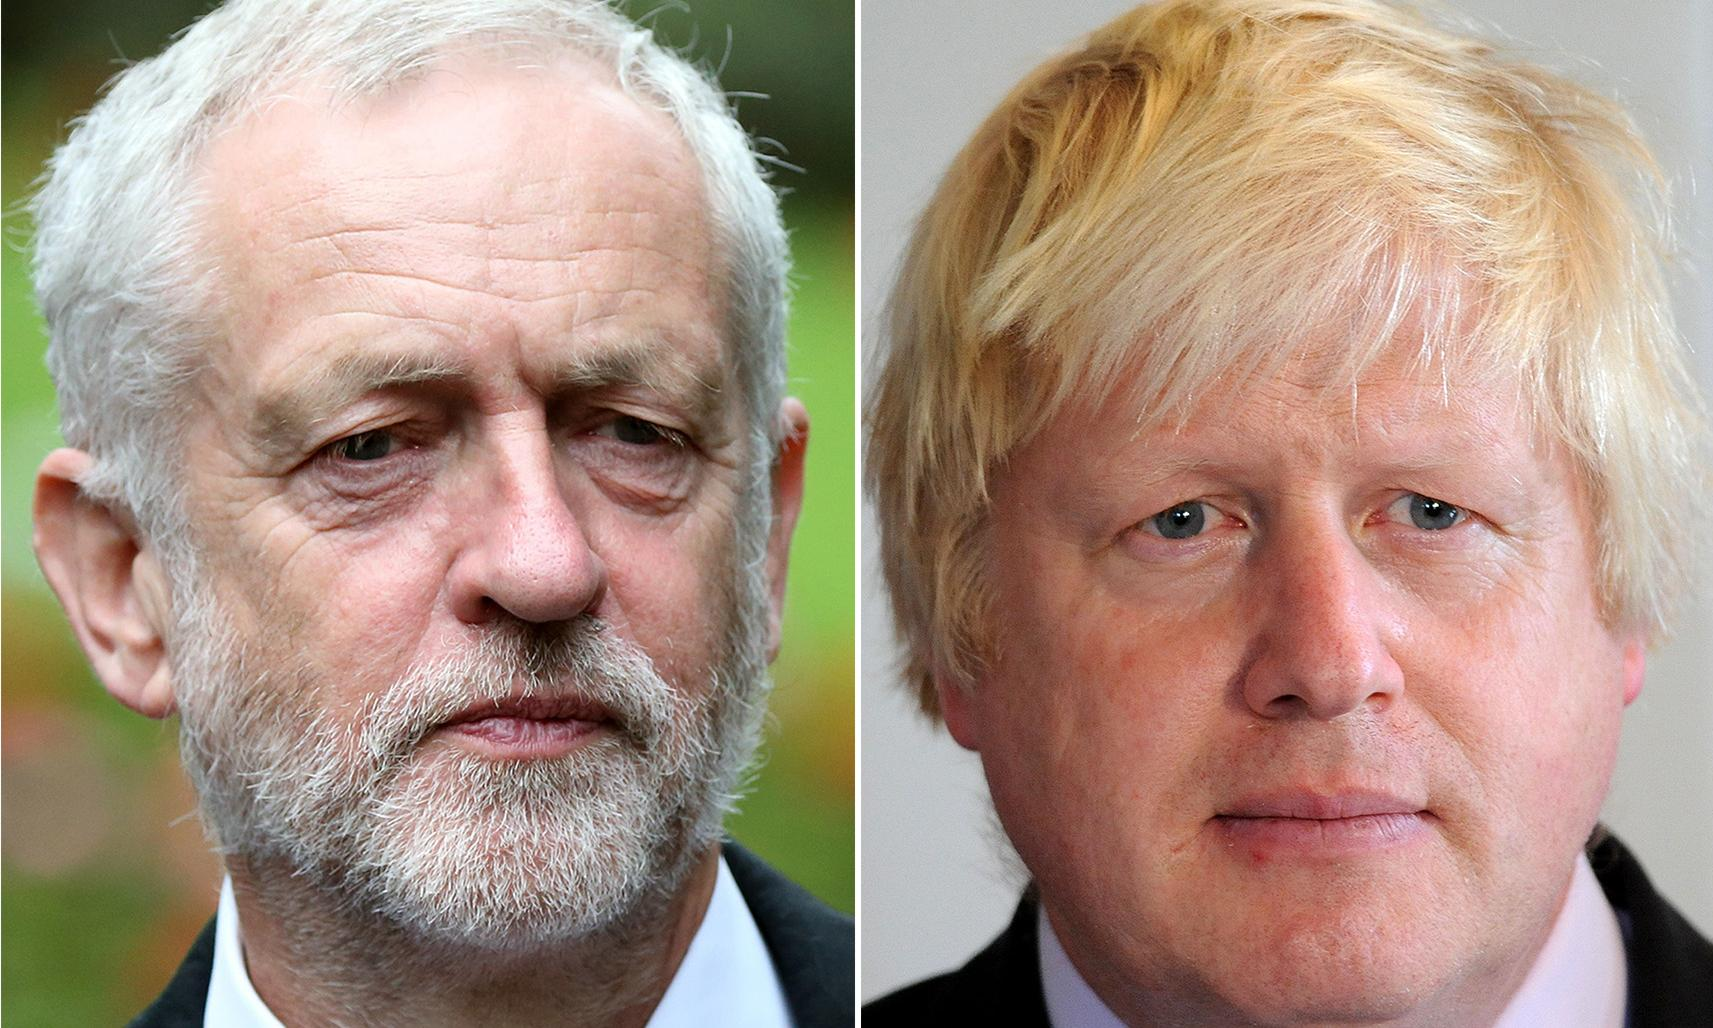 'A phoney outsider': Corbyn attacks Johnson as he sets out election pitch